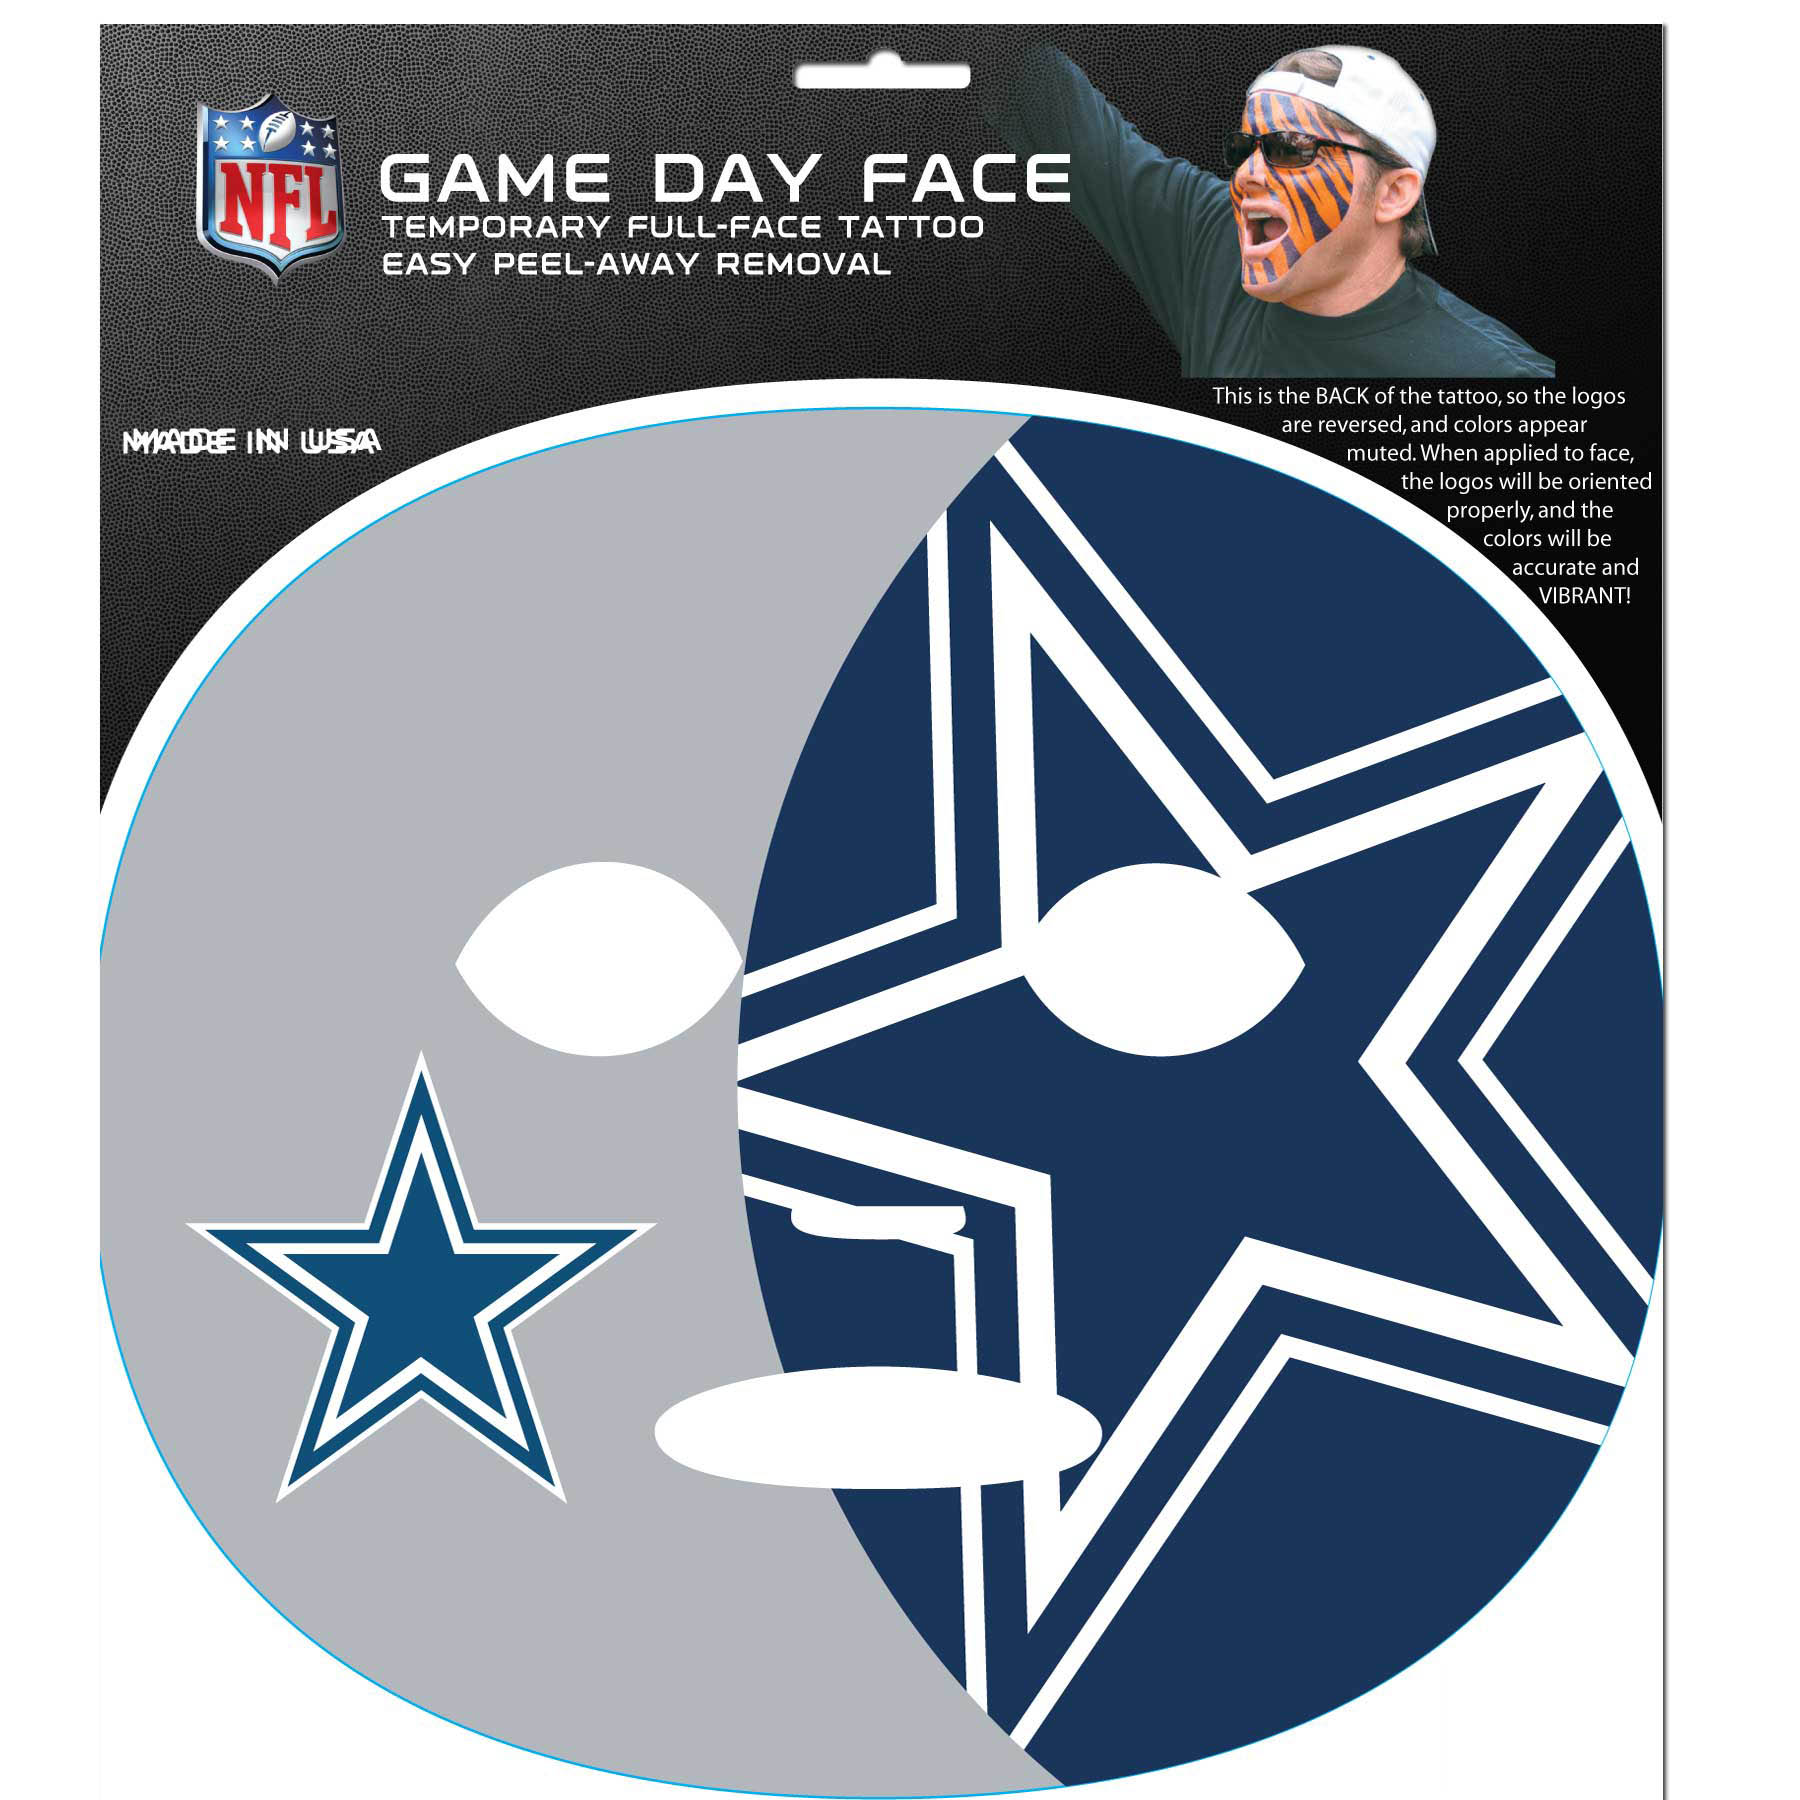 Dallas Cowboys Set of 8 Game Day Faces - No better way to show your team pride than by painting your face. Siskiyou's Game Day Face Temporary Tattoo isn't your typical face paint. It is a water based application that doesn't smudge, smear or sweat off while you're wearing it and easily peels off after you're done celebrating your team's big Win! The temporary tattoo is large enough to trim down to fit your face. Our Game Day Face Temporary Tattoo's are fun for fans of all ages. You may have seen our product before, these are the same Temporary Face Tattoos as pitched on ABC's Shark Tank.